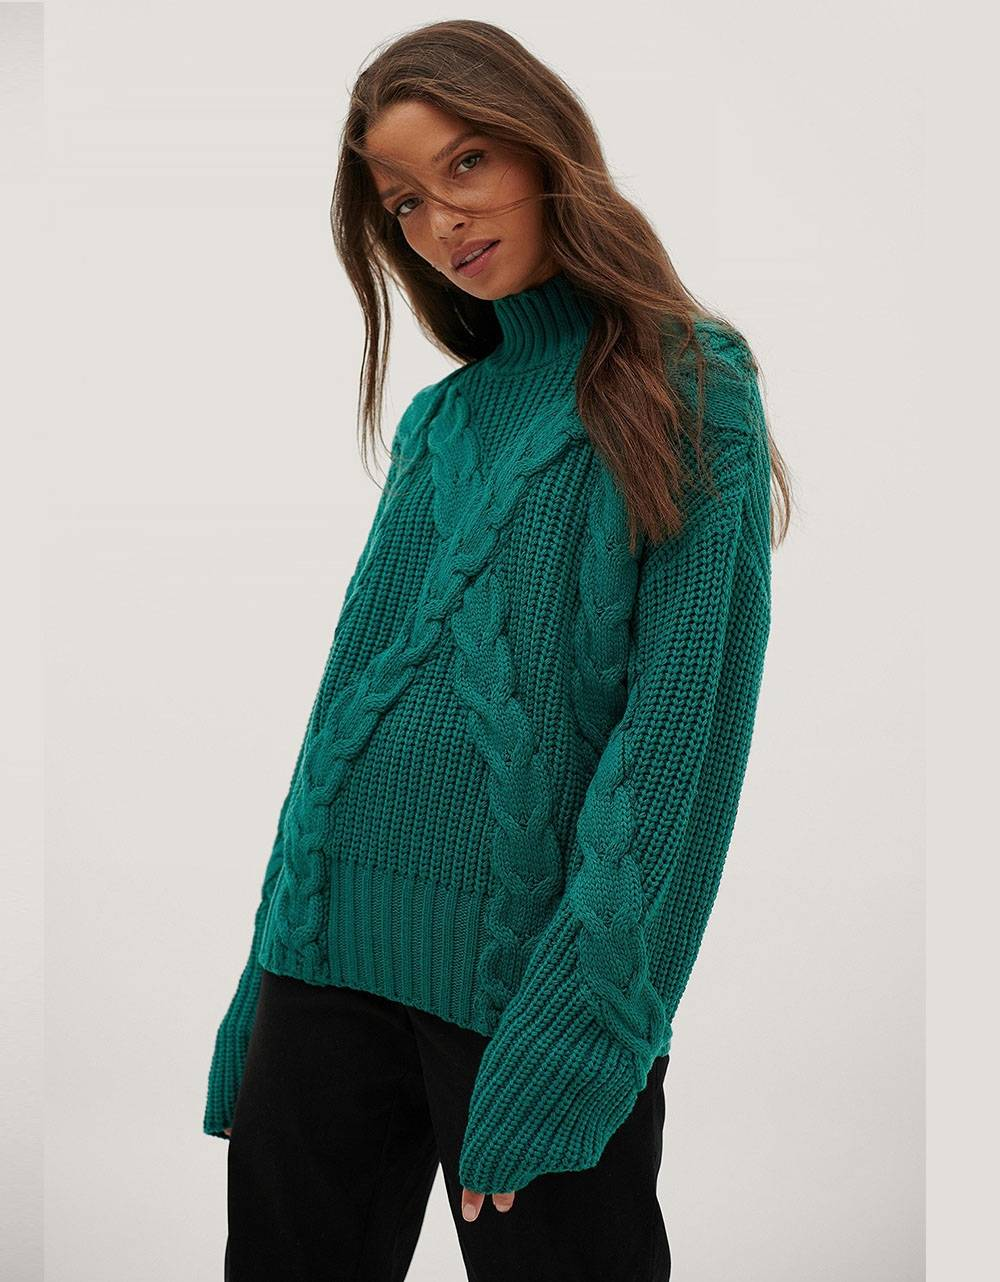 NA-KD oversized cable sweater - emerald NA-KD Sweater 61,48 €